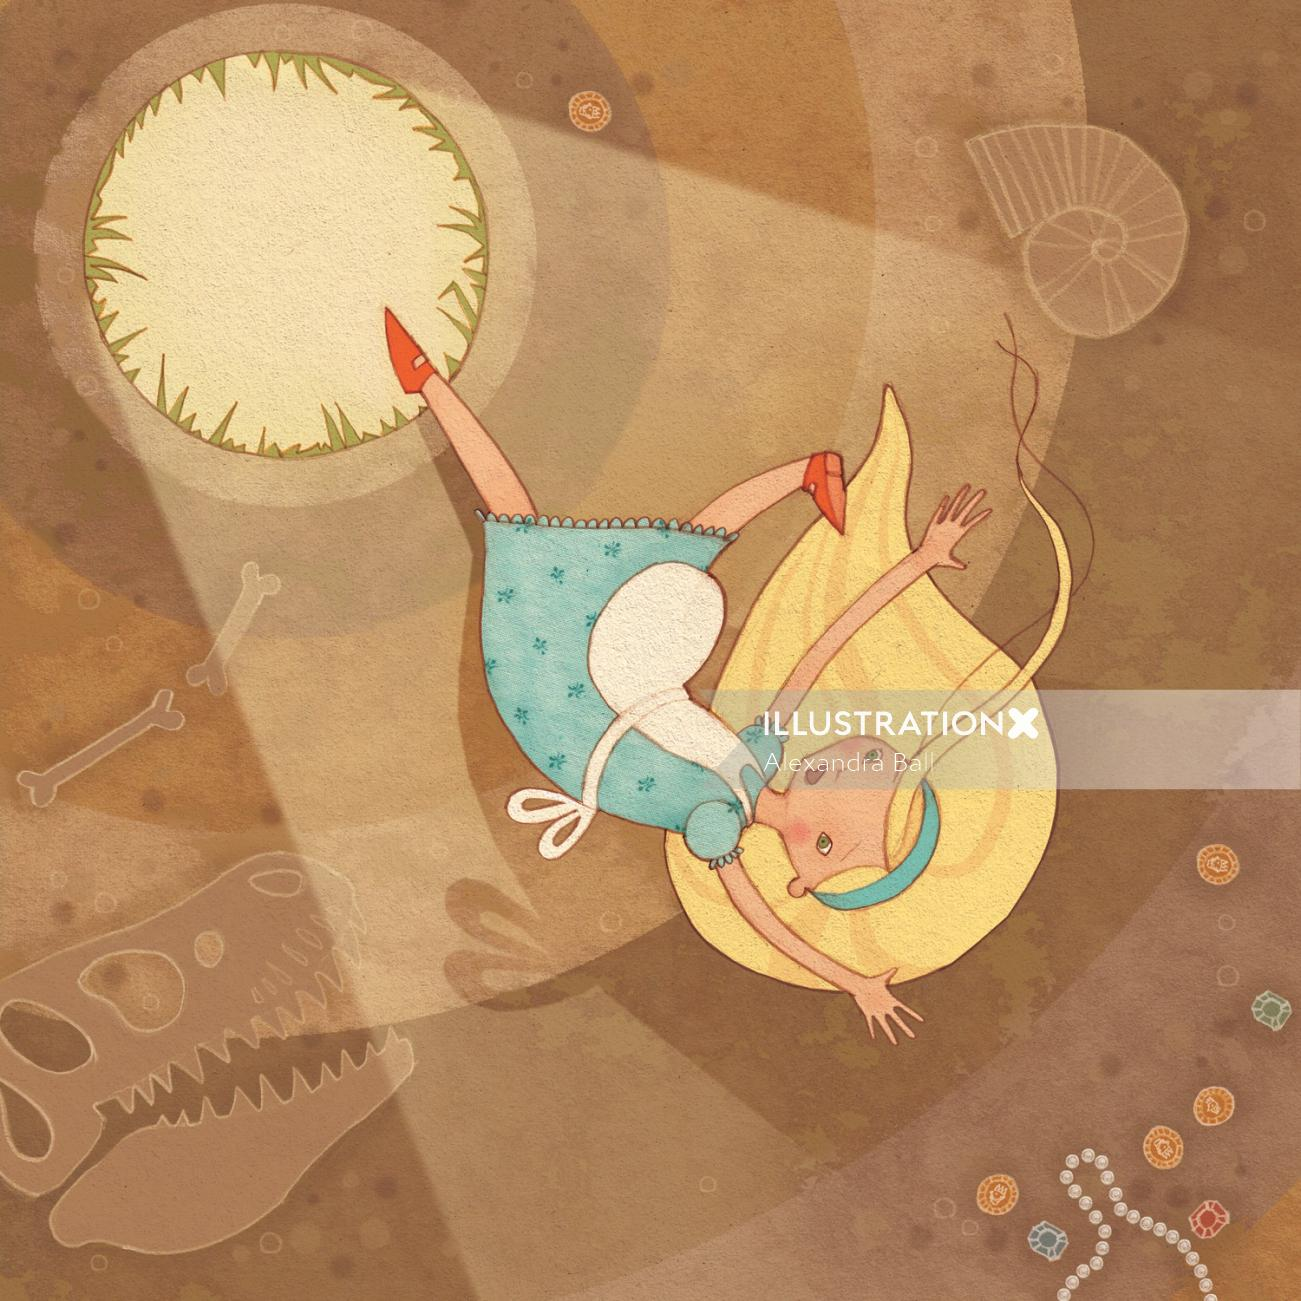 Alice in Wonderland: Falling, Illustration